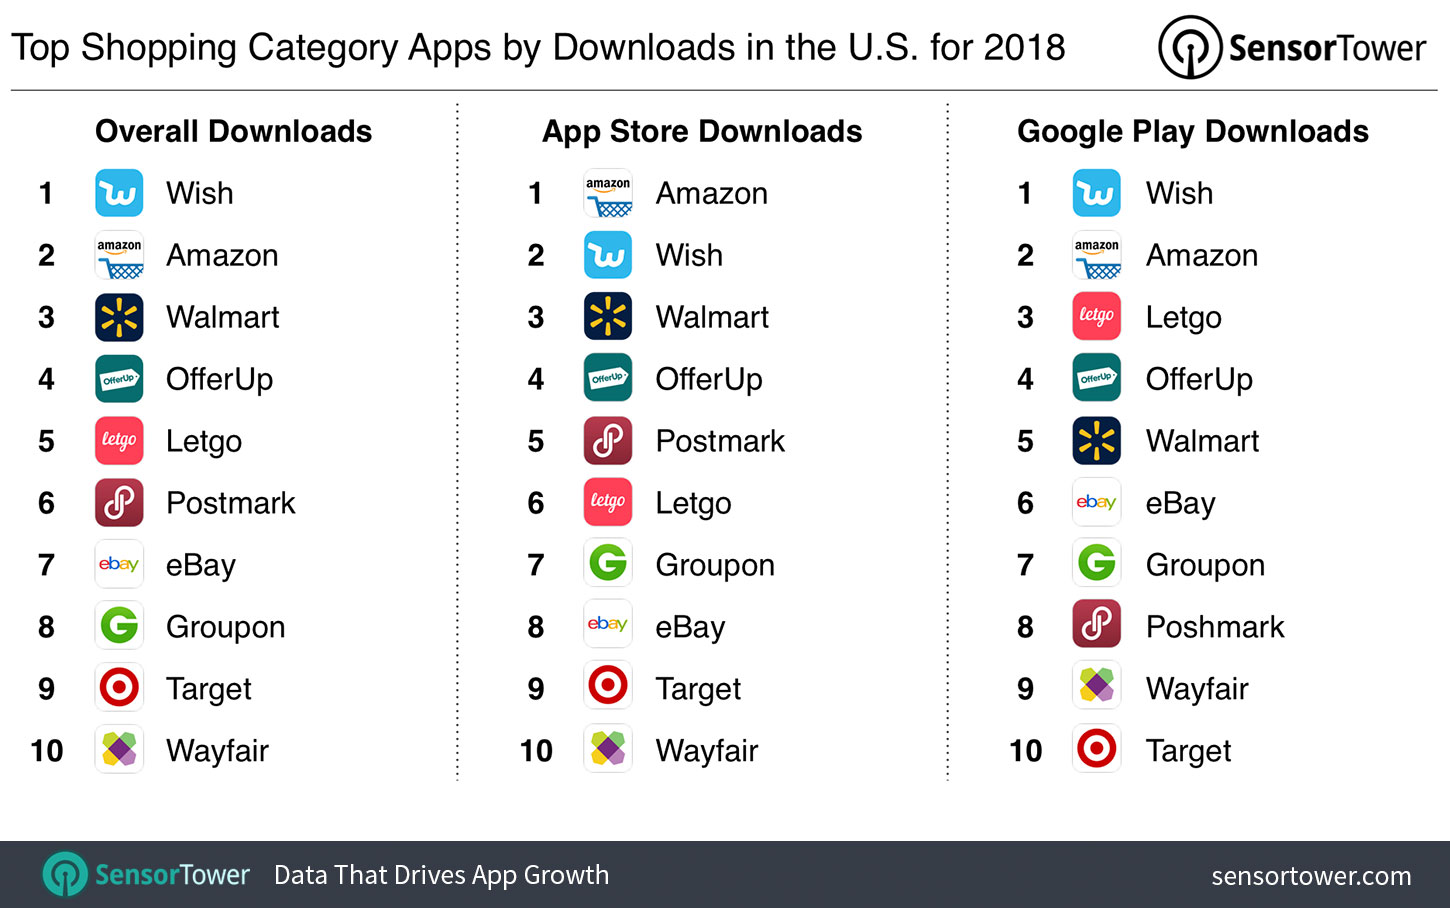 Top Shopping Category Apps by Downloads for 2018